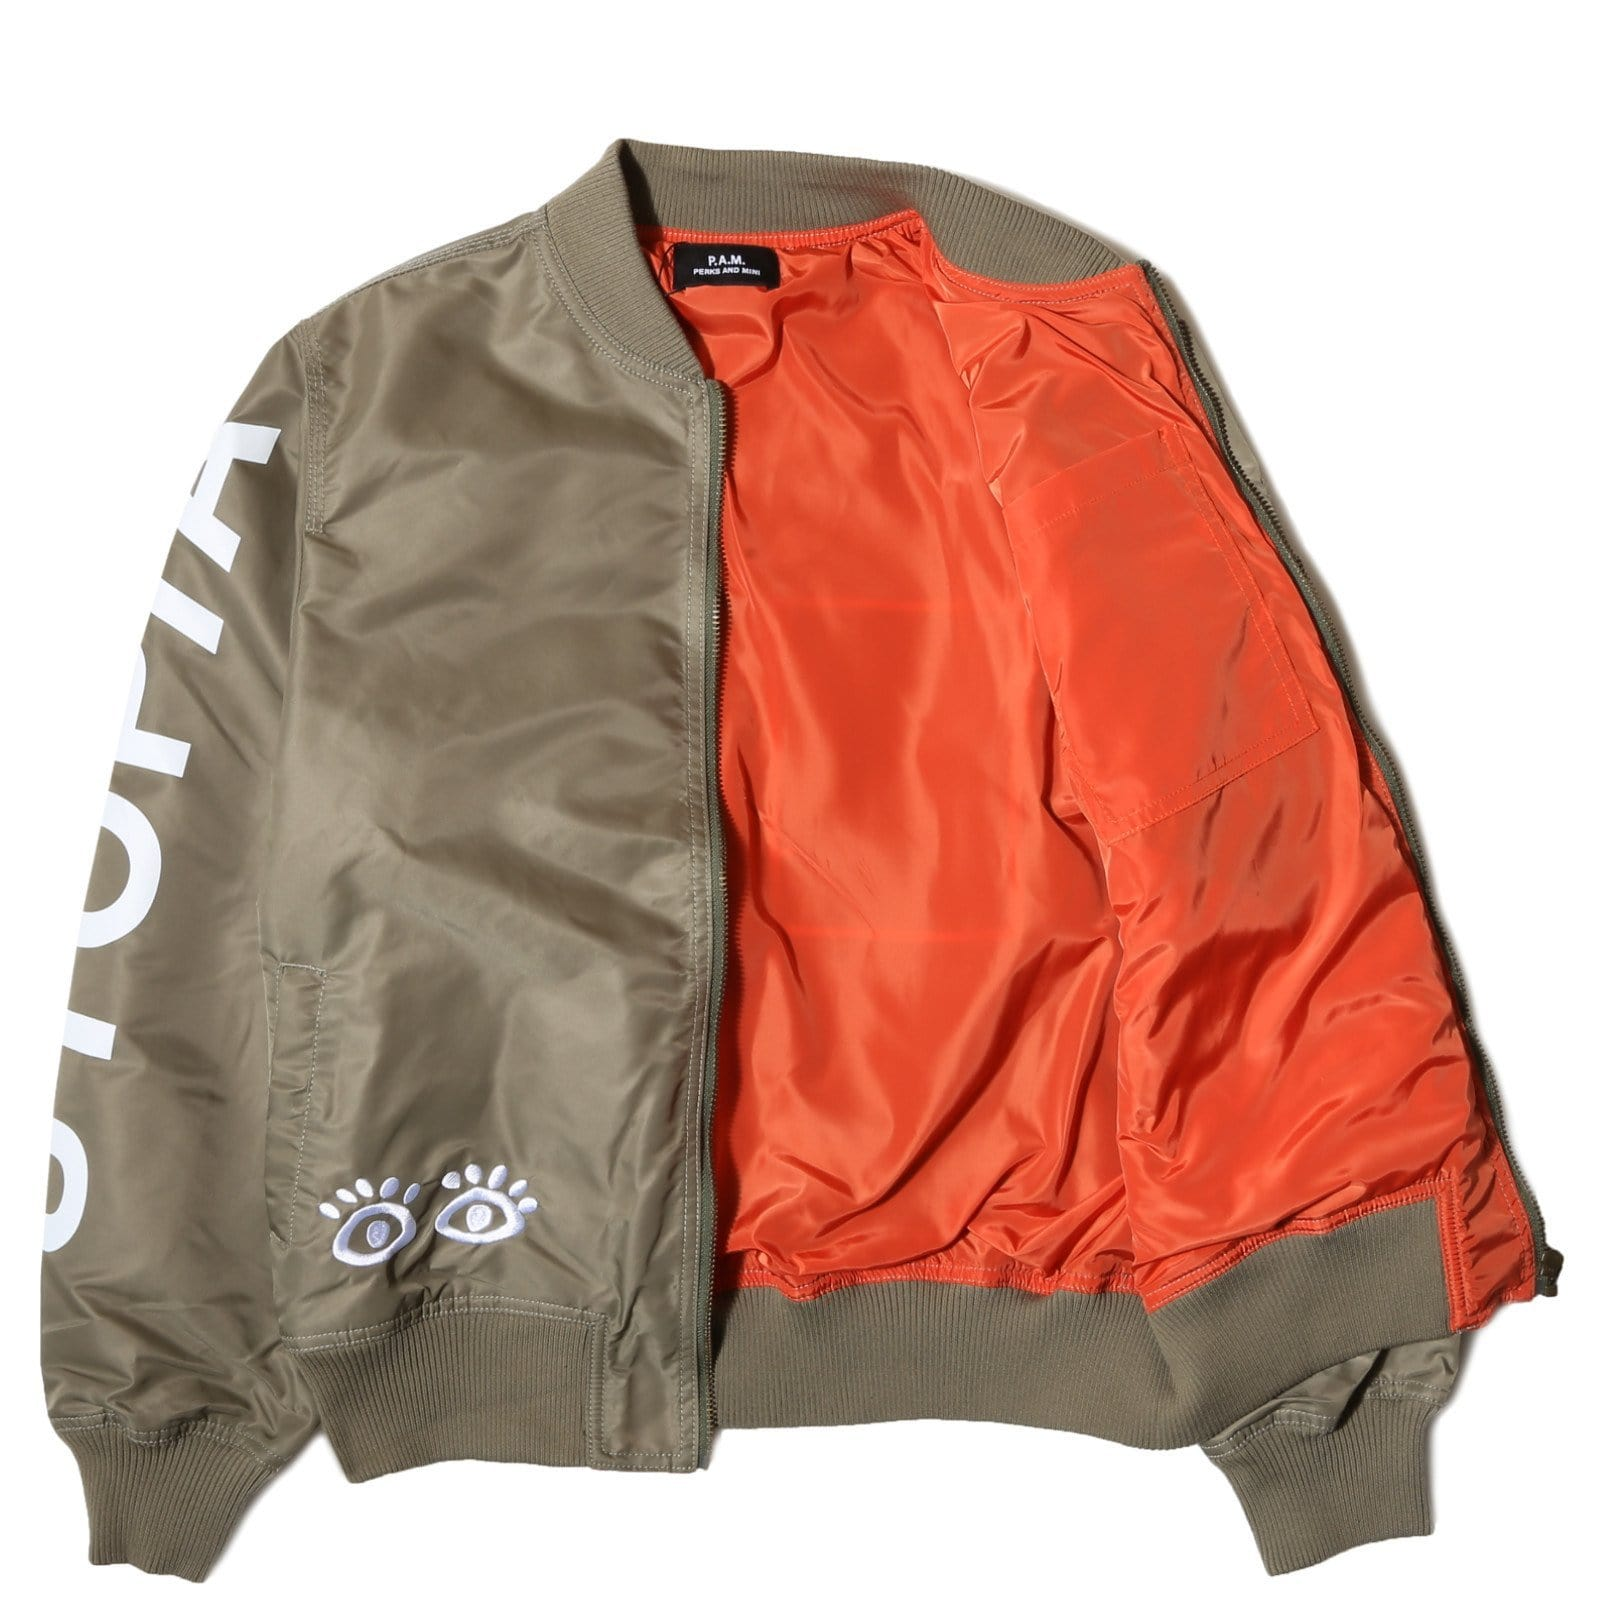 Perks and Mini Outerwear UTOPIATES BOMBER JACKET